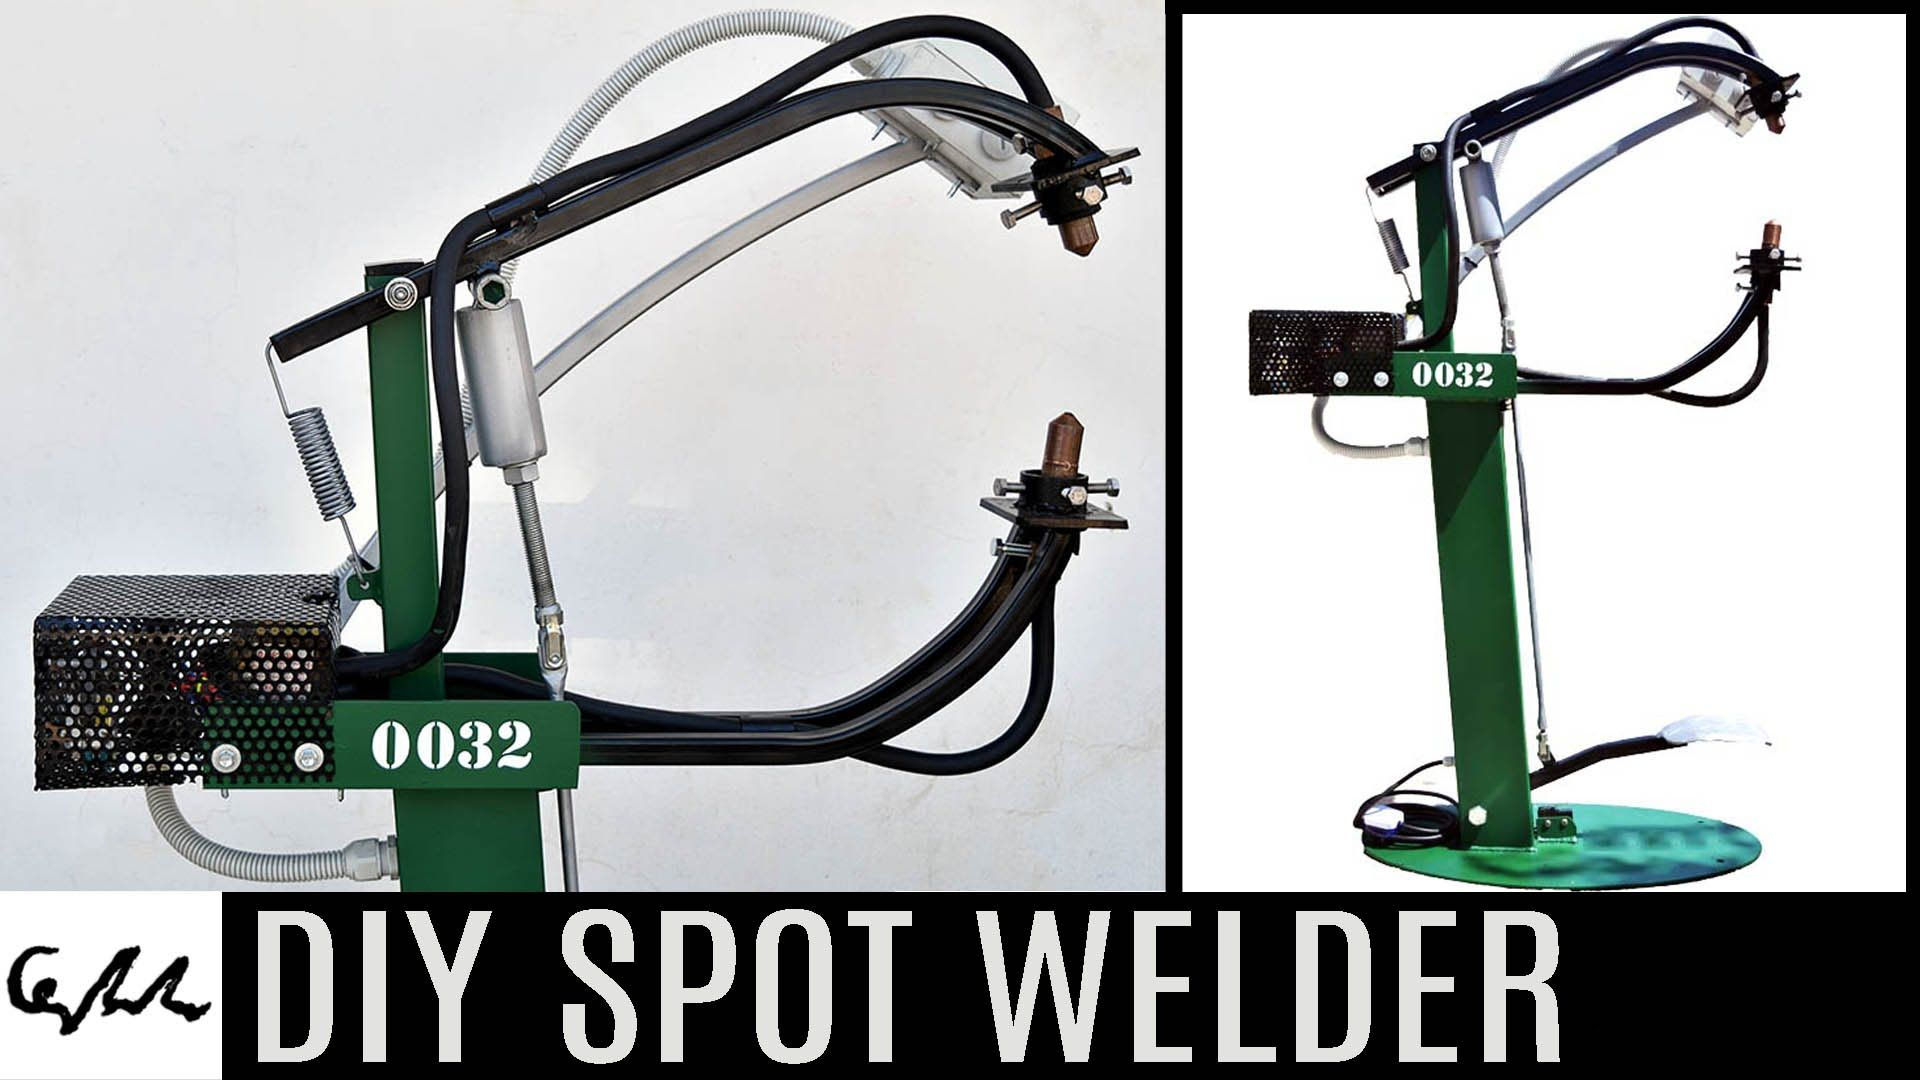 The Particular Project Was Planned Not To Make A Portable Spot Welding Diagram Welder But One With Stable Basis Therefore We Made Metallic Frame